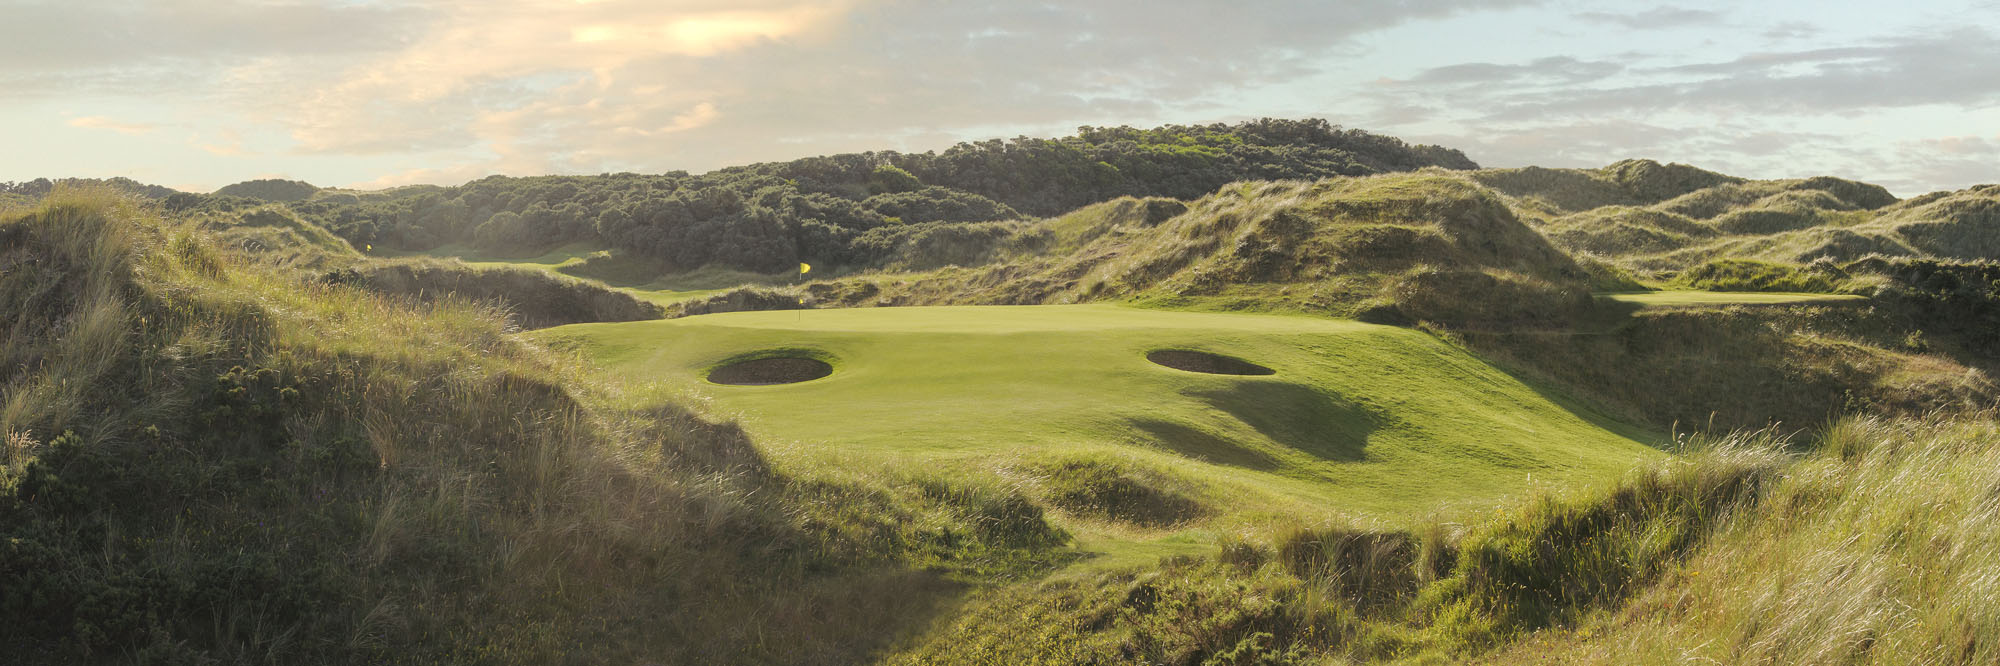 Golf Course Image - Portstewart No. 6